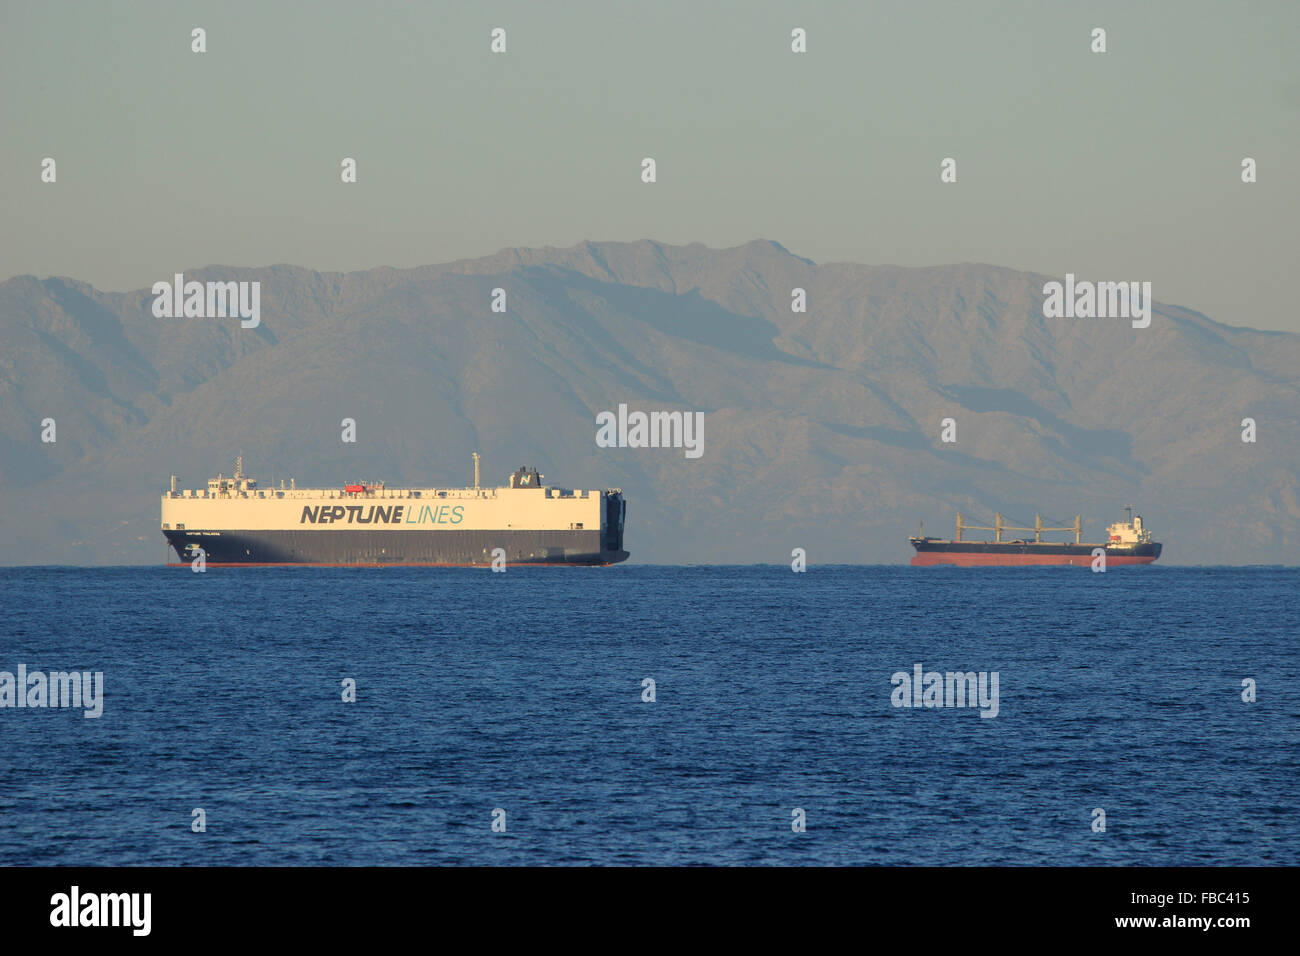 Neptune lines (PCTC) pure car and truck carrier vessel sailing in the aegean sea. Samothrace island in the background. - Stock Image